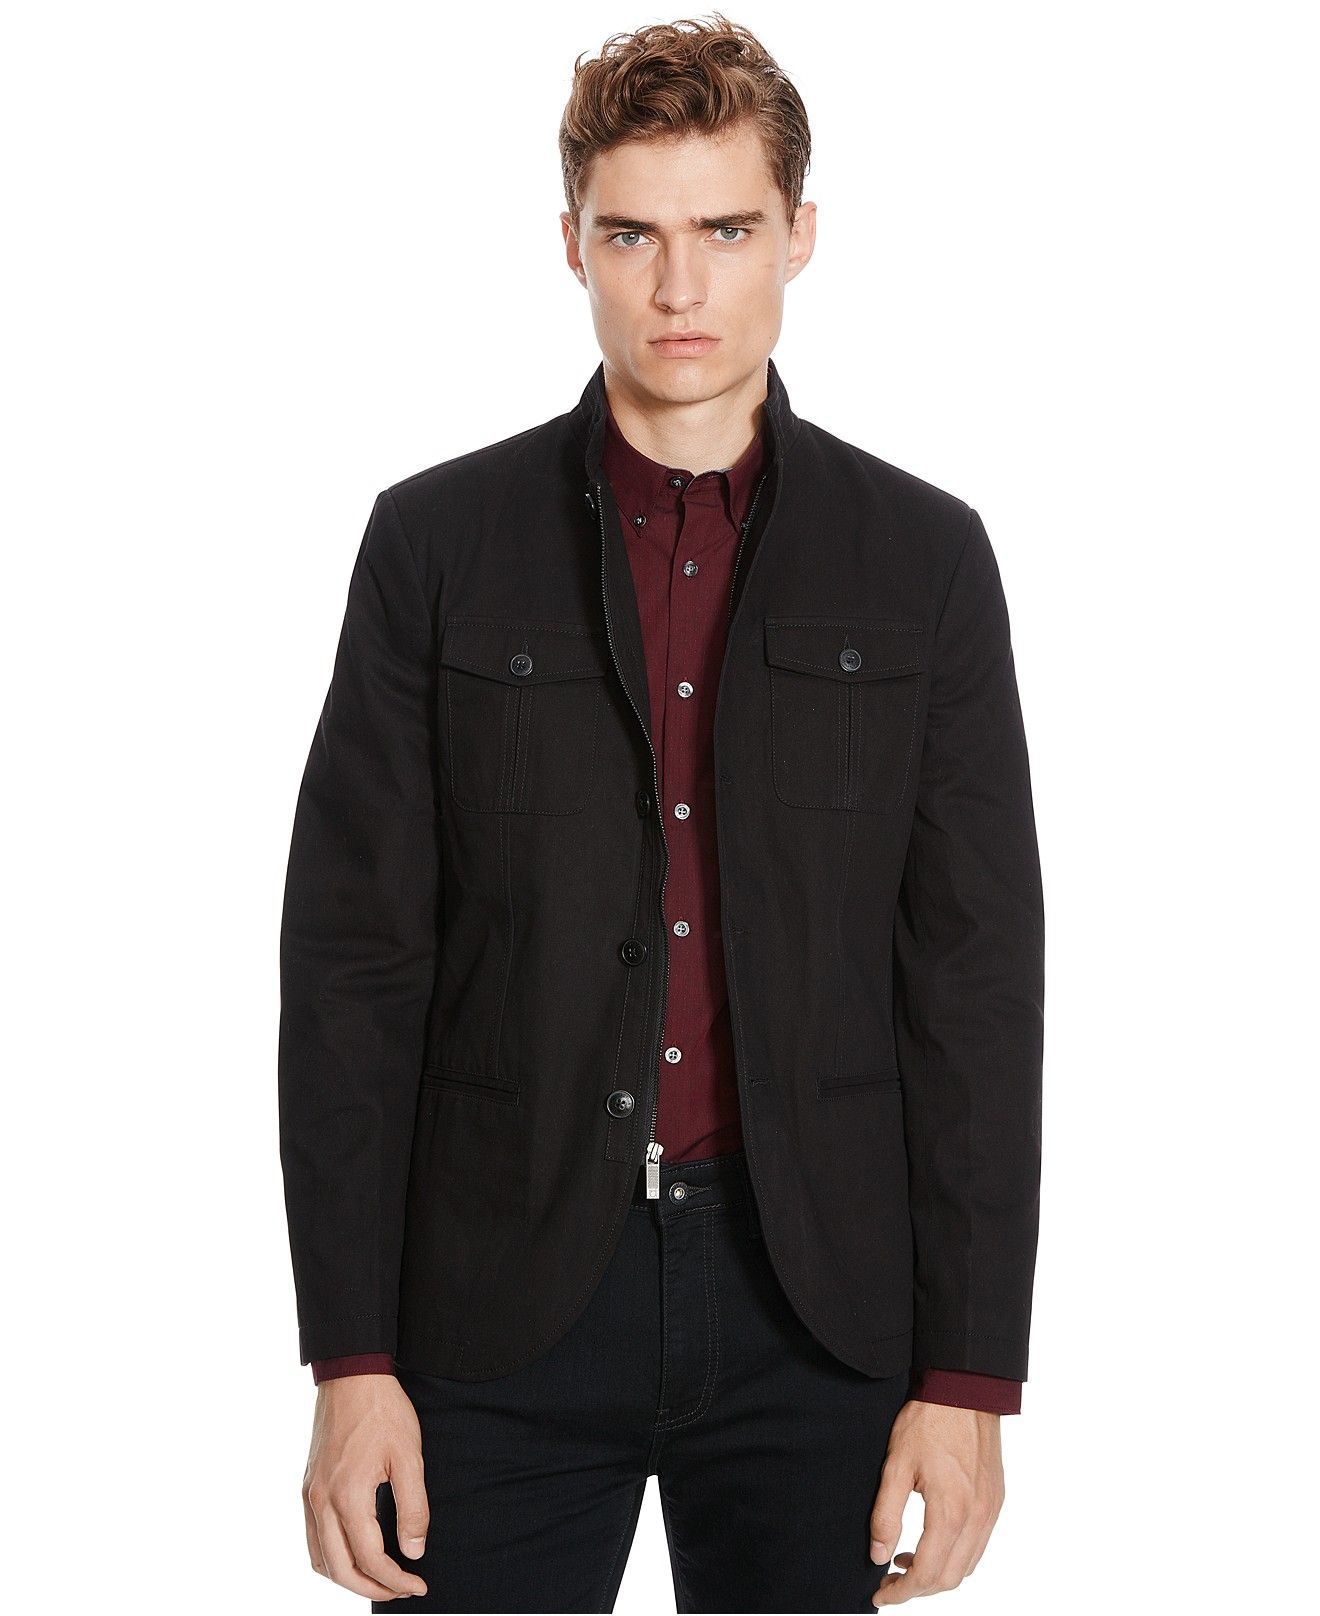 Kenneth Cole Reaction Twill Sport Coat - Reaction Blazer, Macy's ...